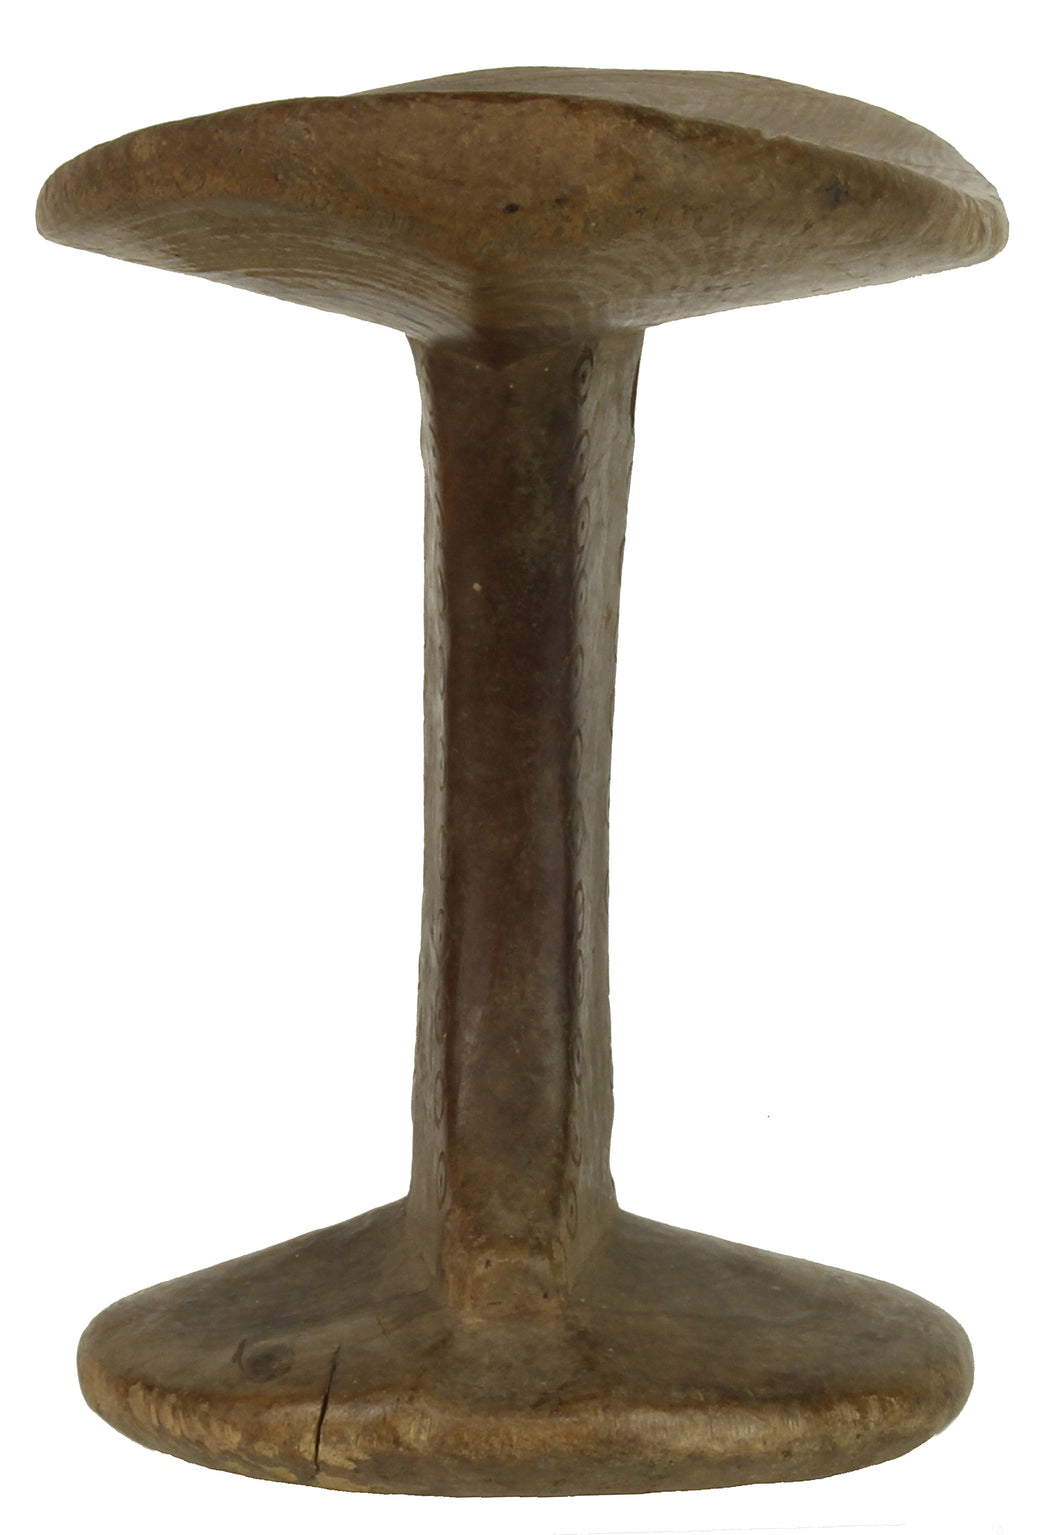 Vintage Turkana Headrest of Kenya - Niger Bend